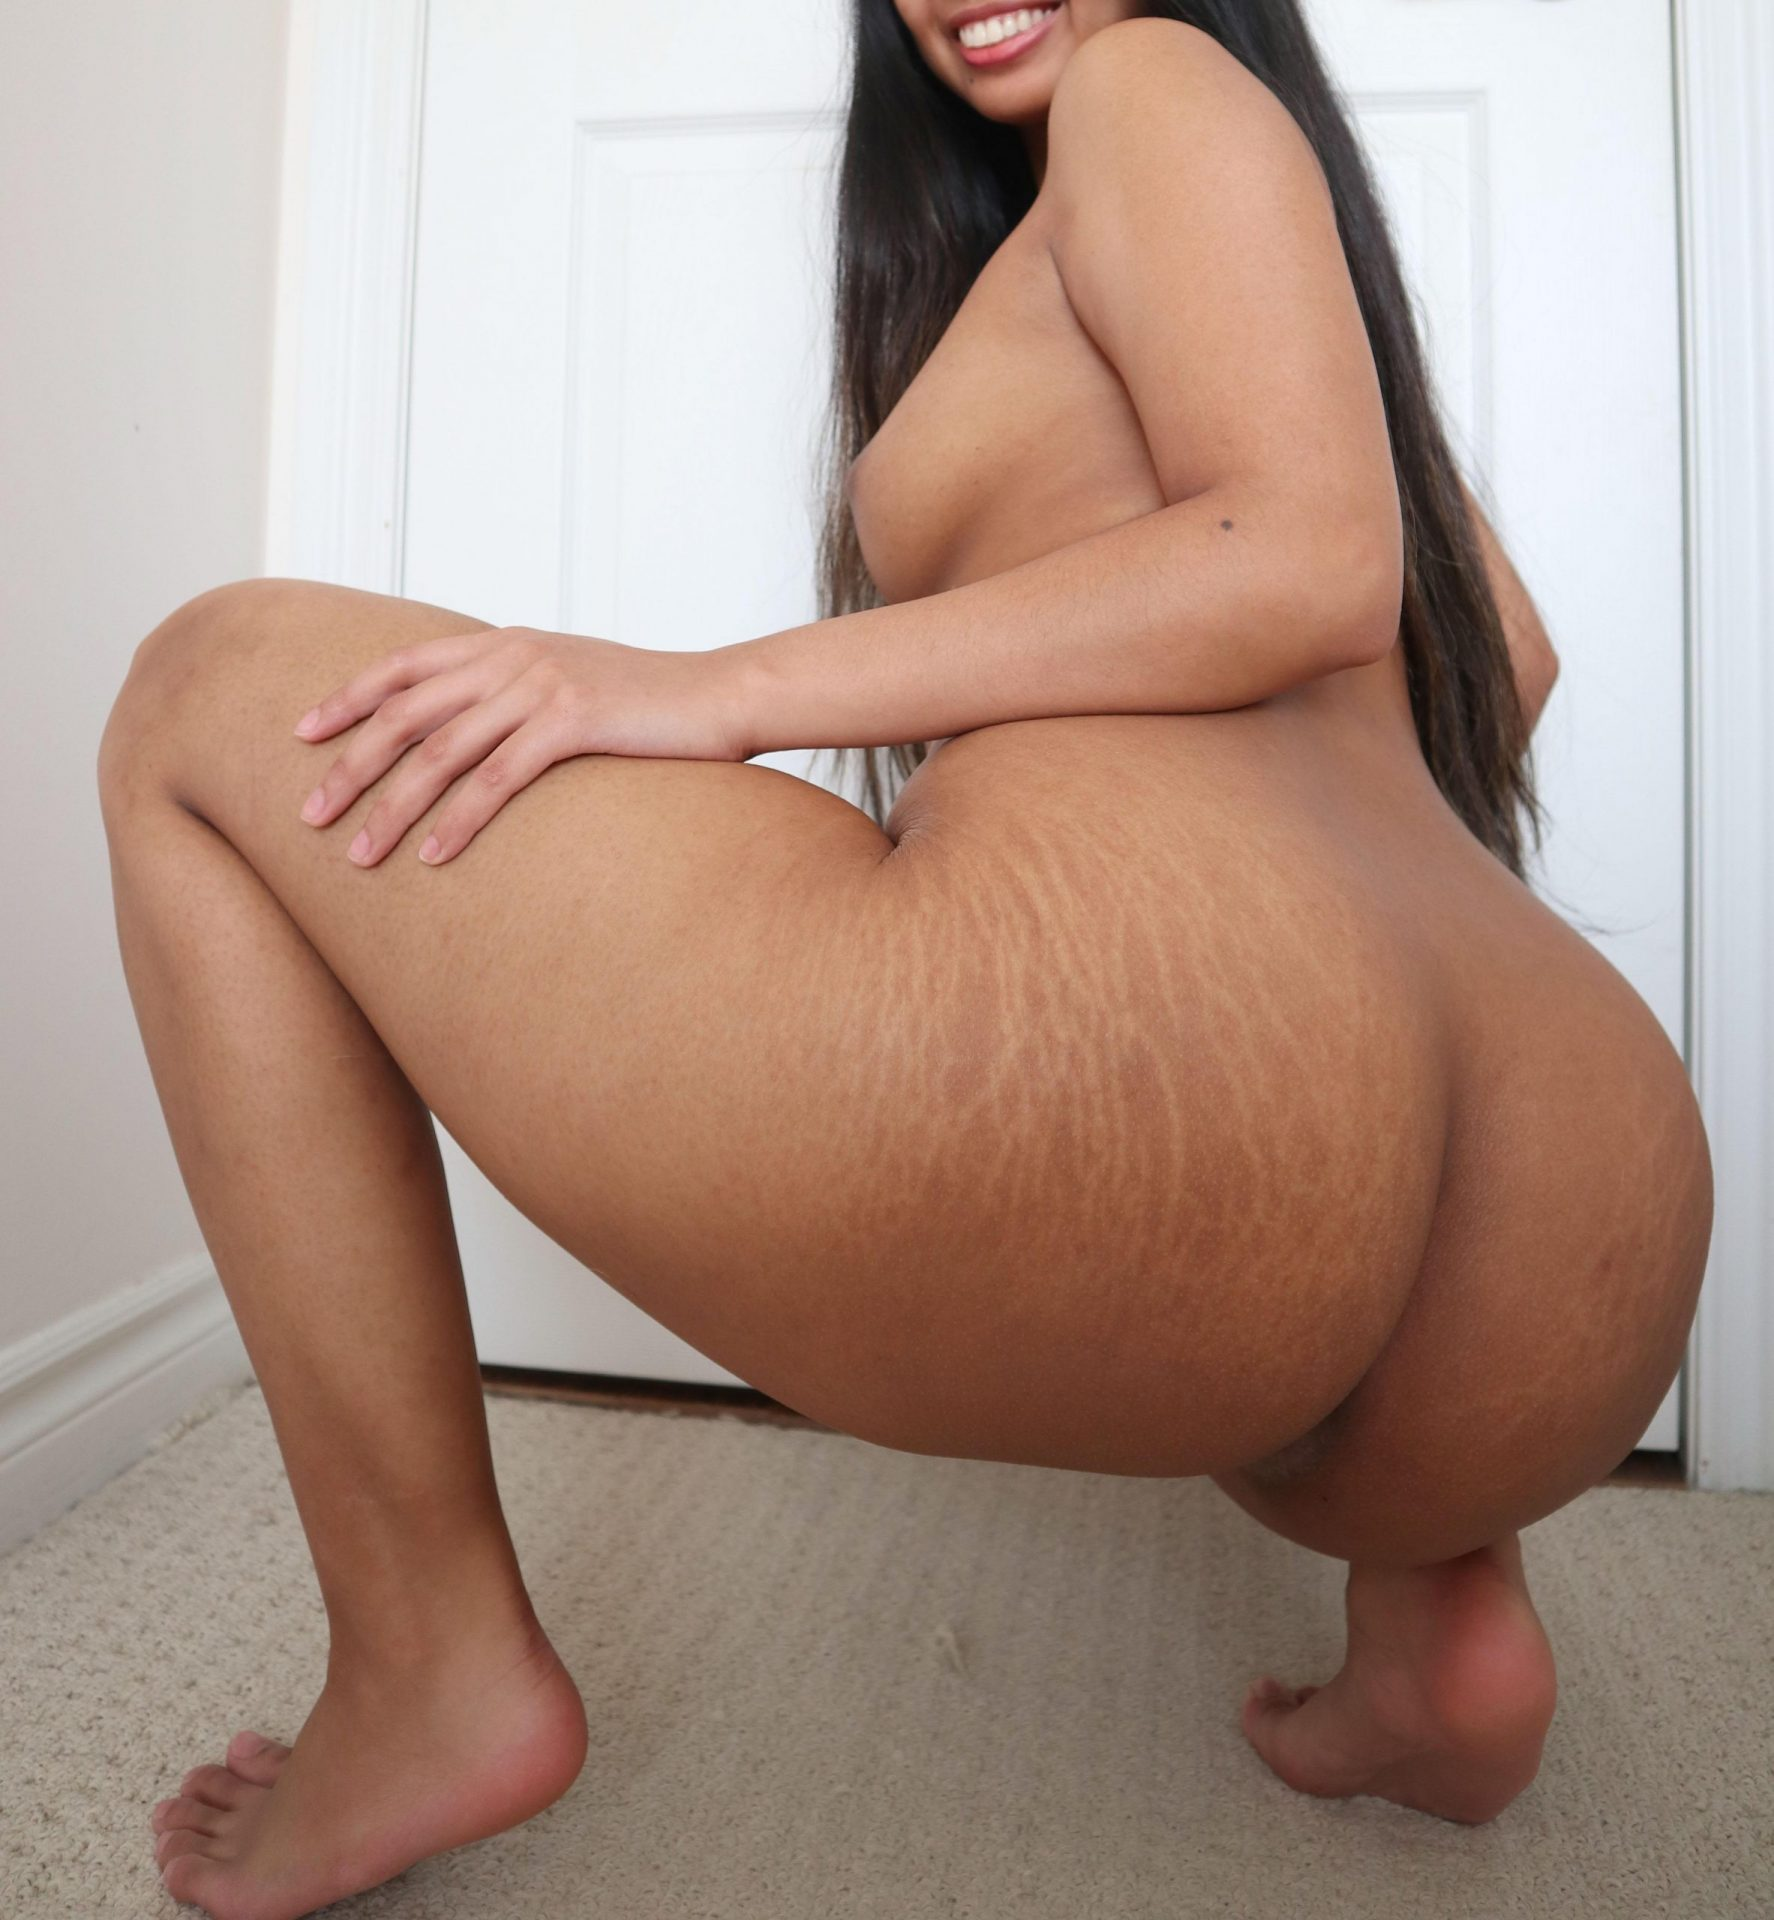 Do you have something for me to bounce my fat filipina ass on?